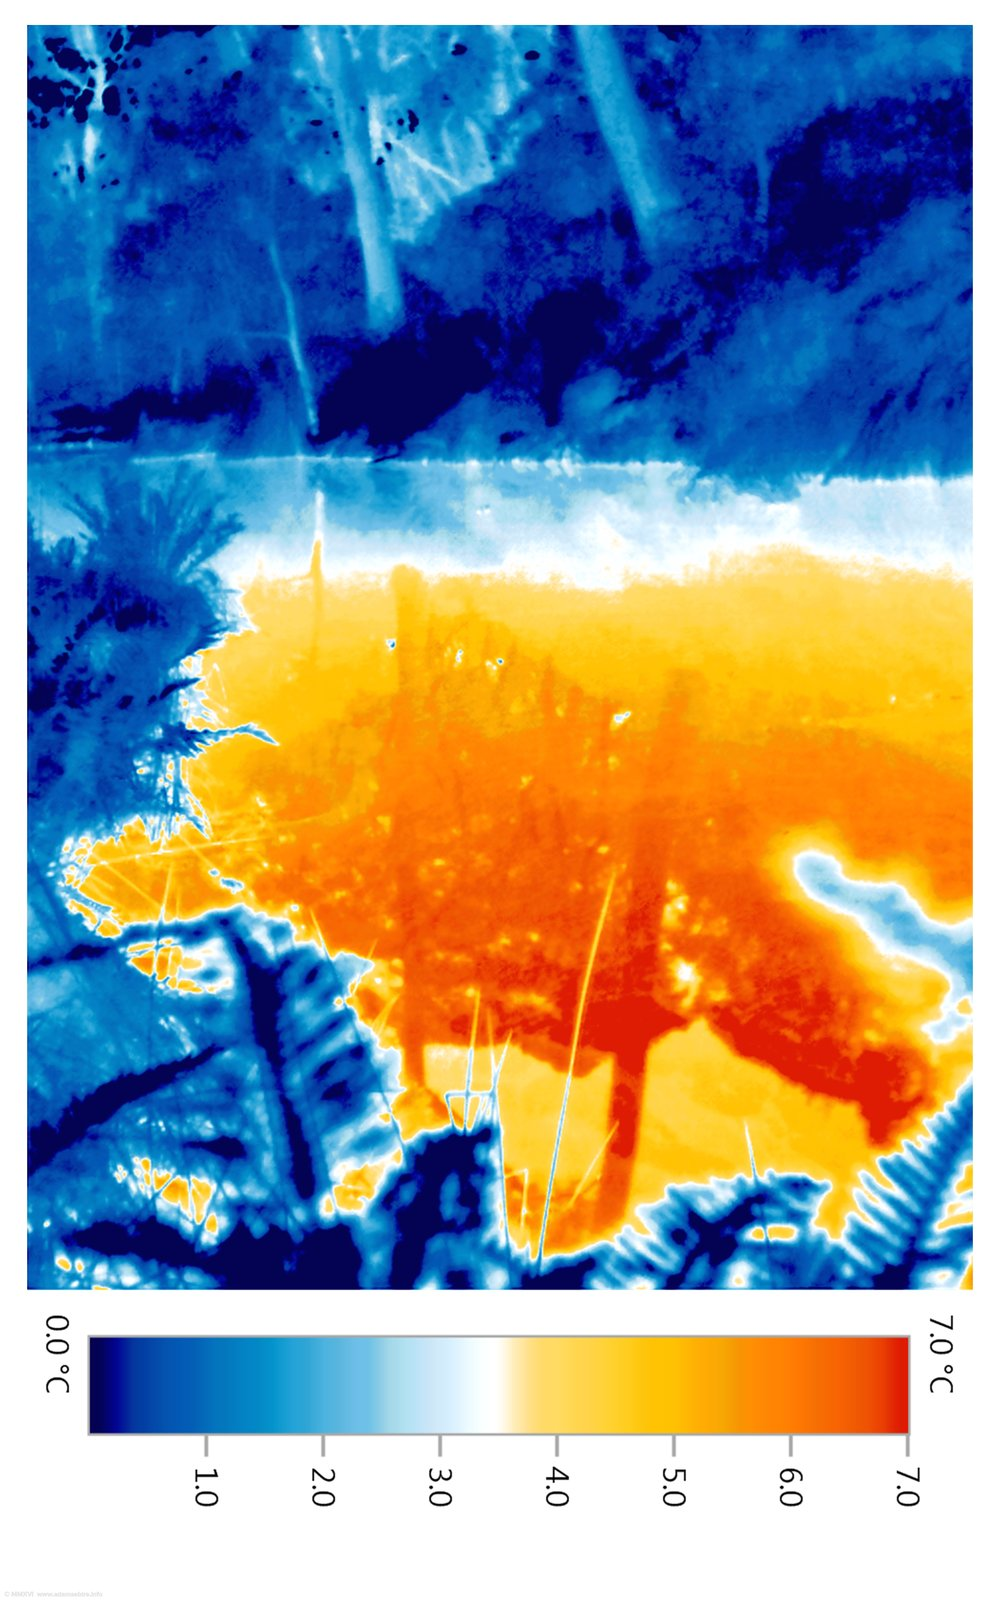 Global warming as hyperobject — thermal image art — Anthropocene aesthetic